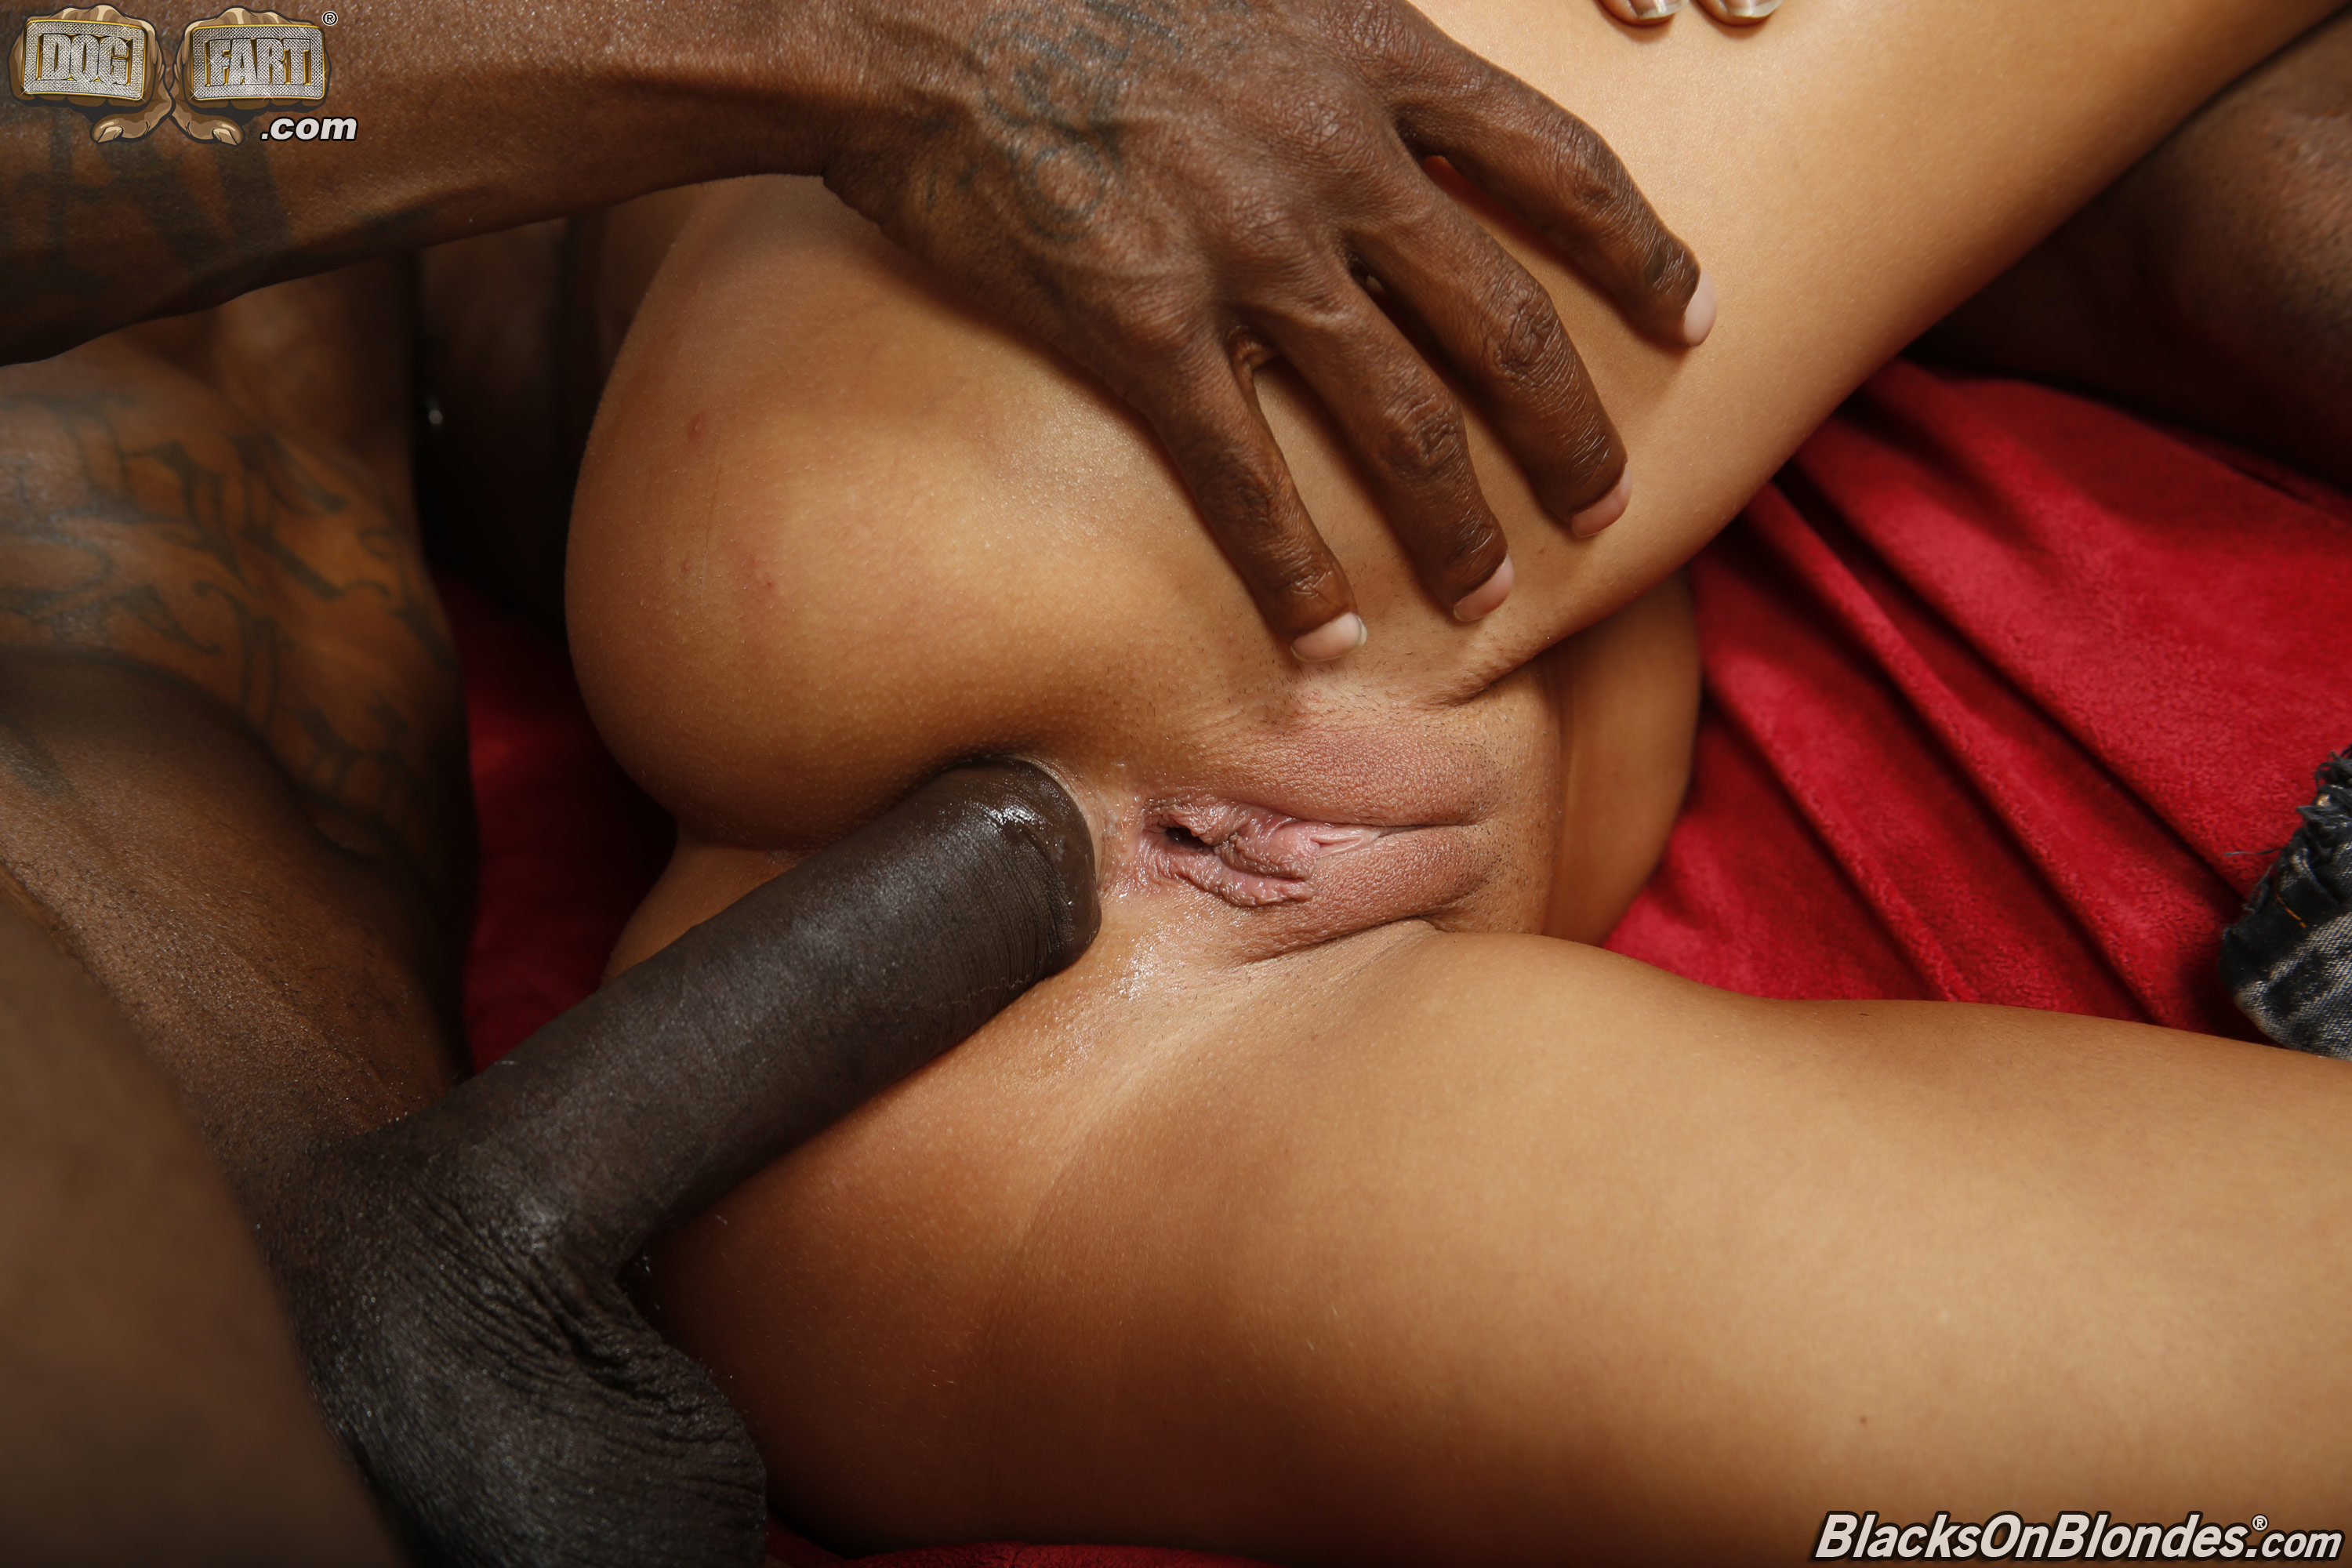 galleries blacksonblondes content amirah adara pic 22